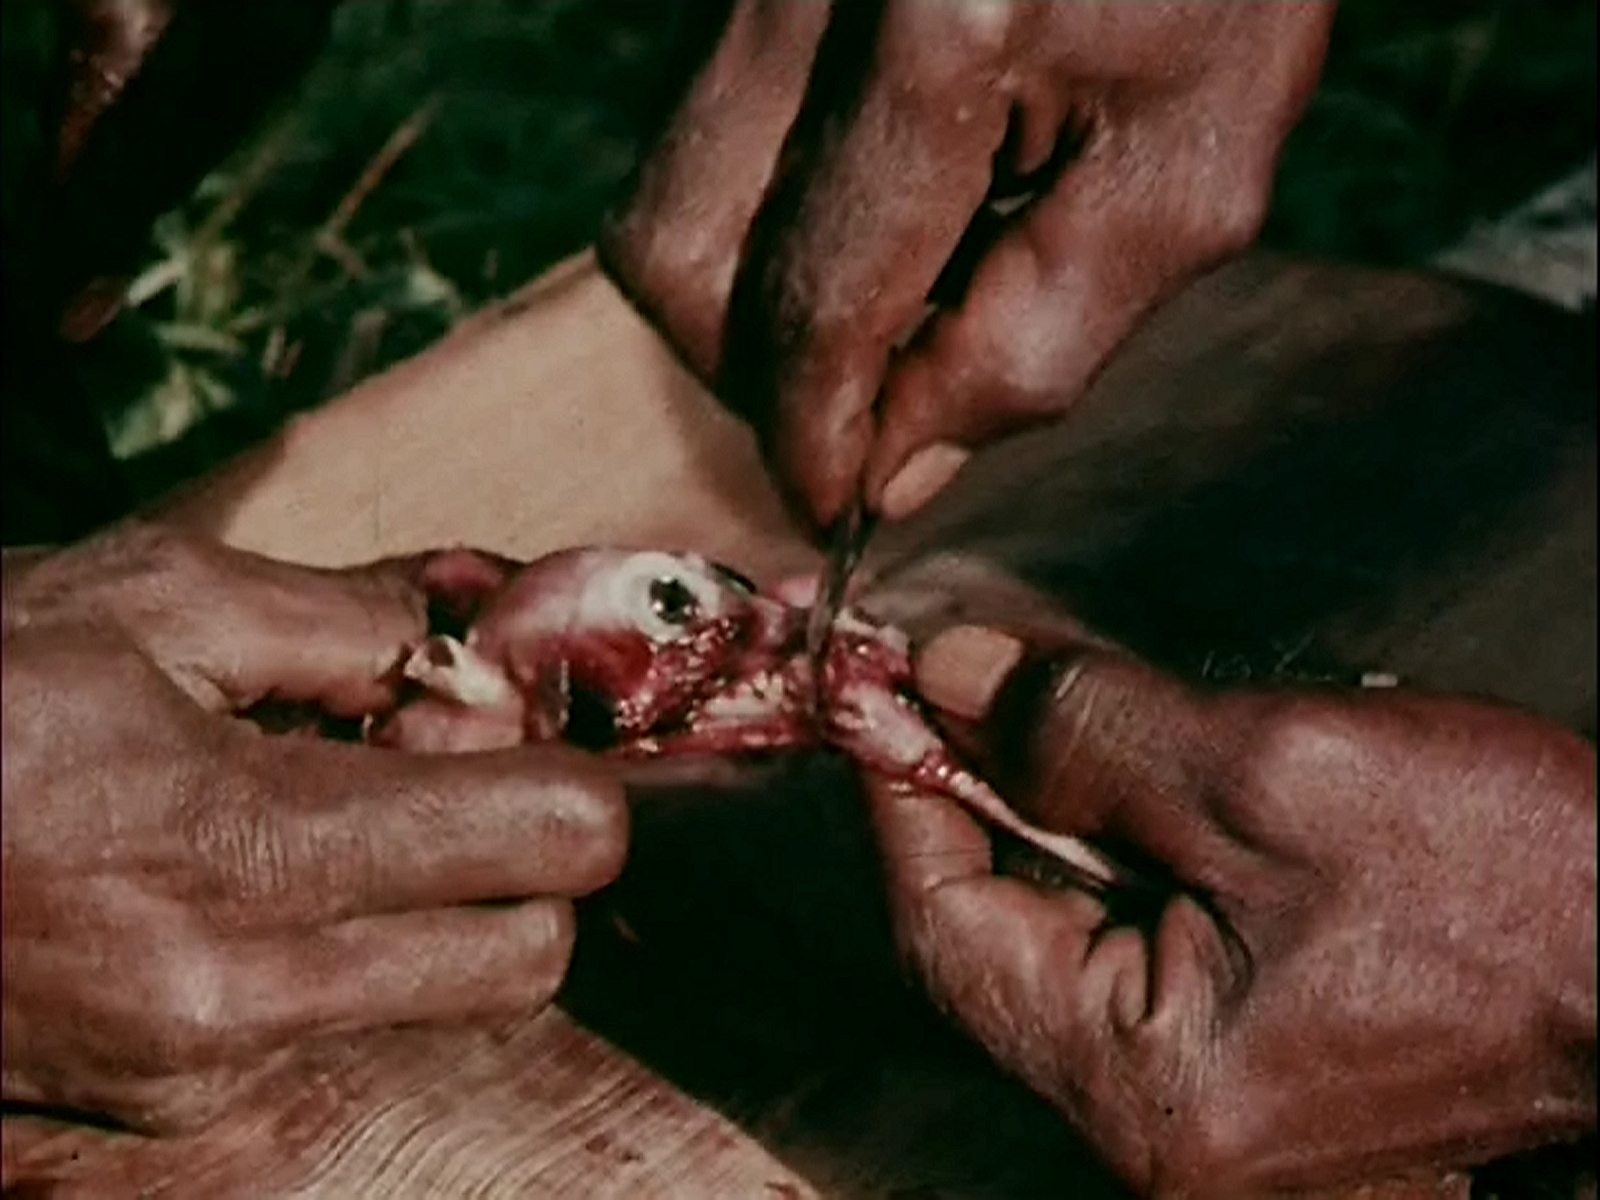 http://sinsofcinema.com/Images/Real%20Cannibal%20Holocaust/Real%20Cannibal%20Holocaust%20DVD%20One7%20Movies.jpg